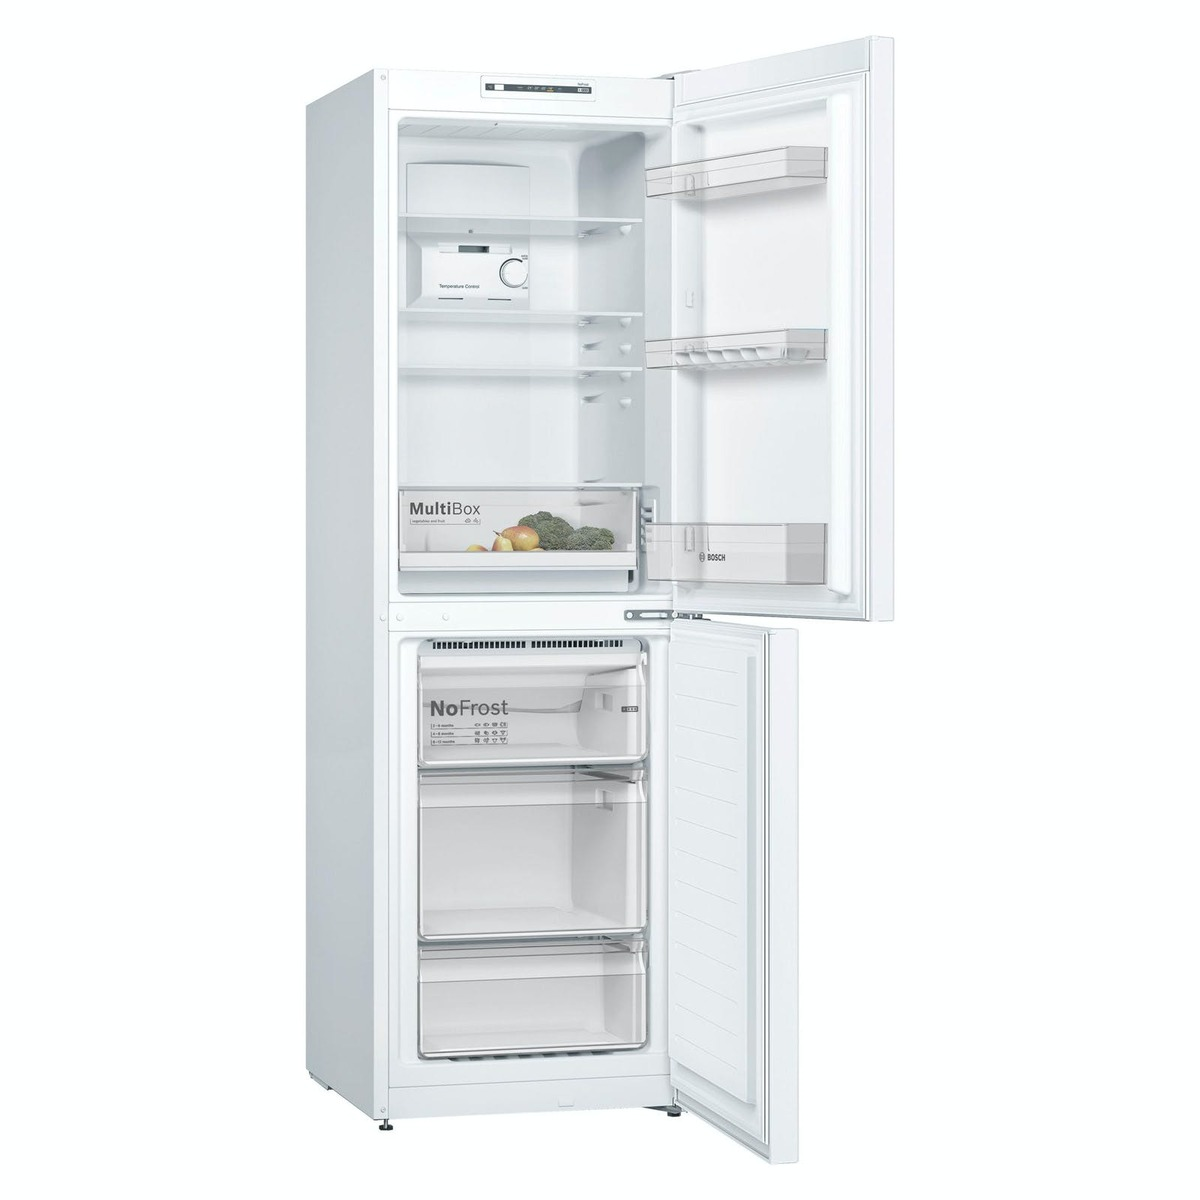 PRC Direct LEC TF55185W 60cm A+ Frost Free Fridge Freezer in White